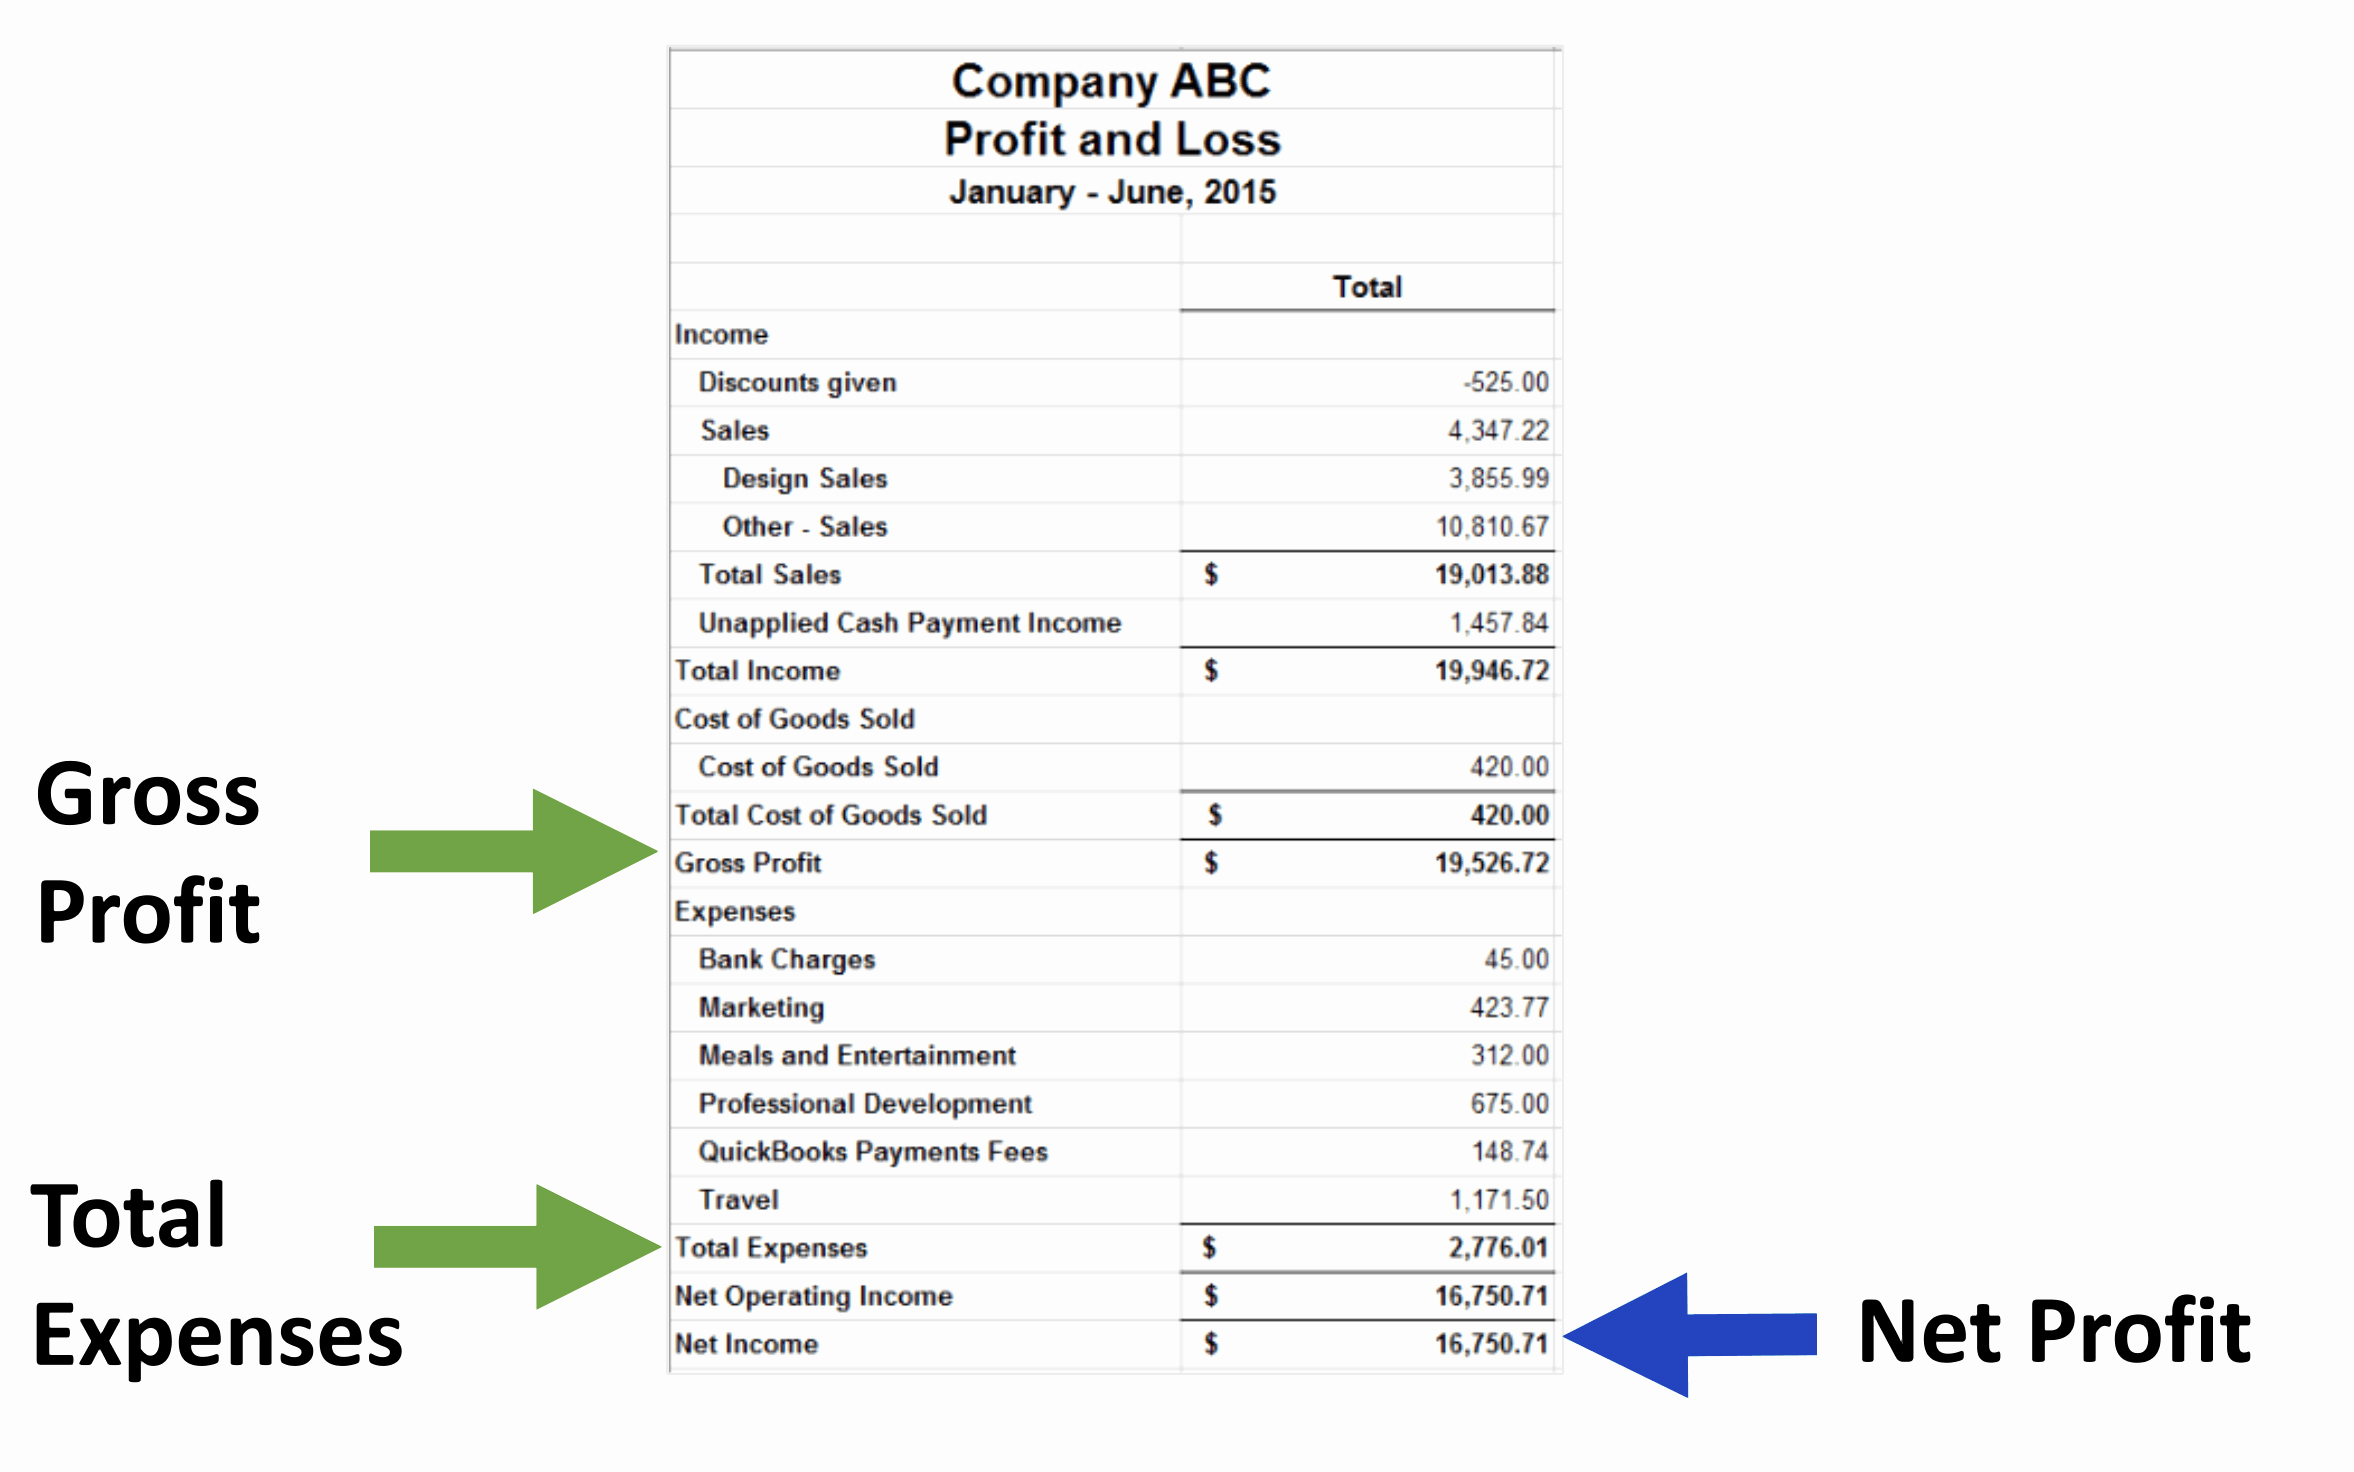 Profit Loss Statement Example Lovely How to Read A Profit and Loss Statement Smi Financial